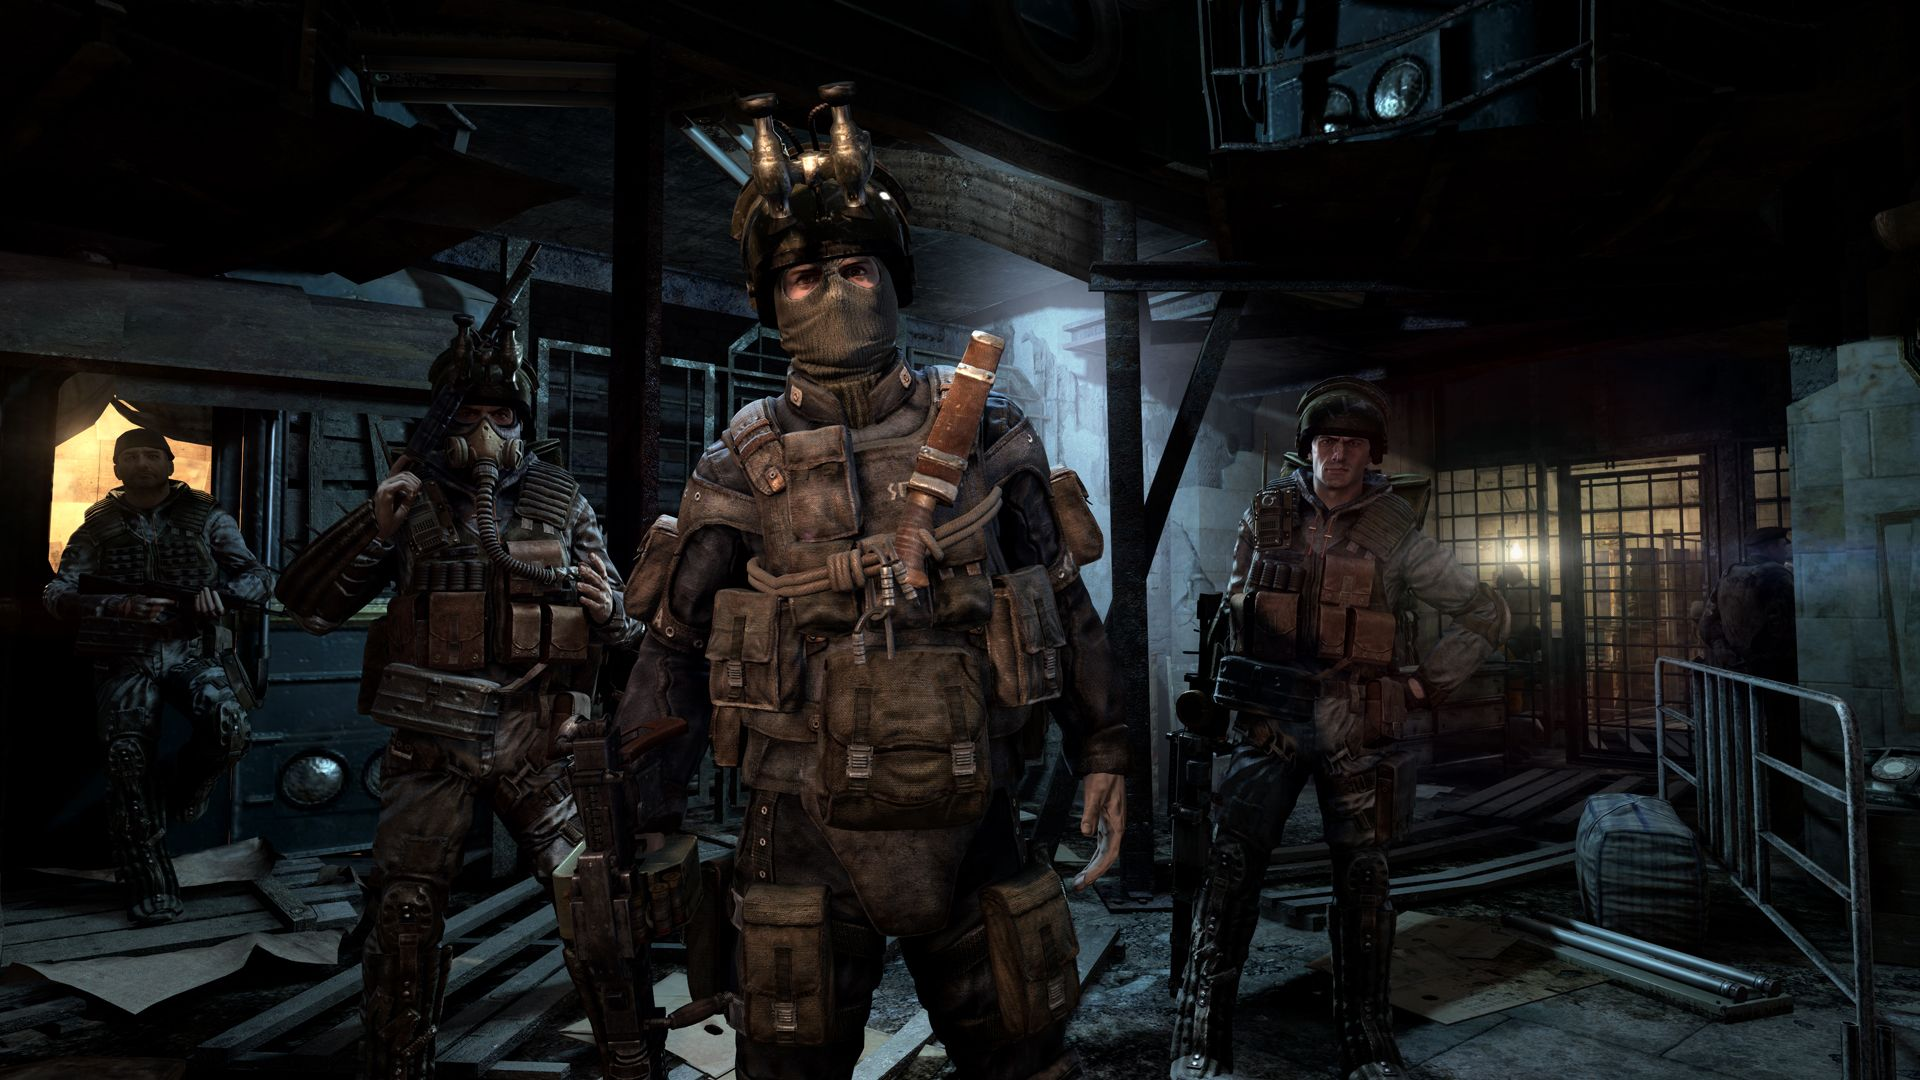 Metro Last Light Is Available Now On Xbox 360 Playstation 3 And Pc Metro Last Light Post Apocalipsis Videojuegos